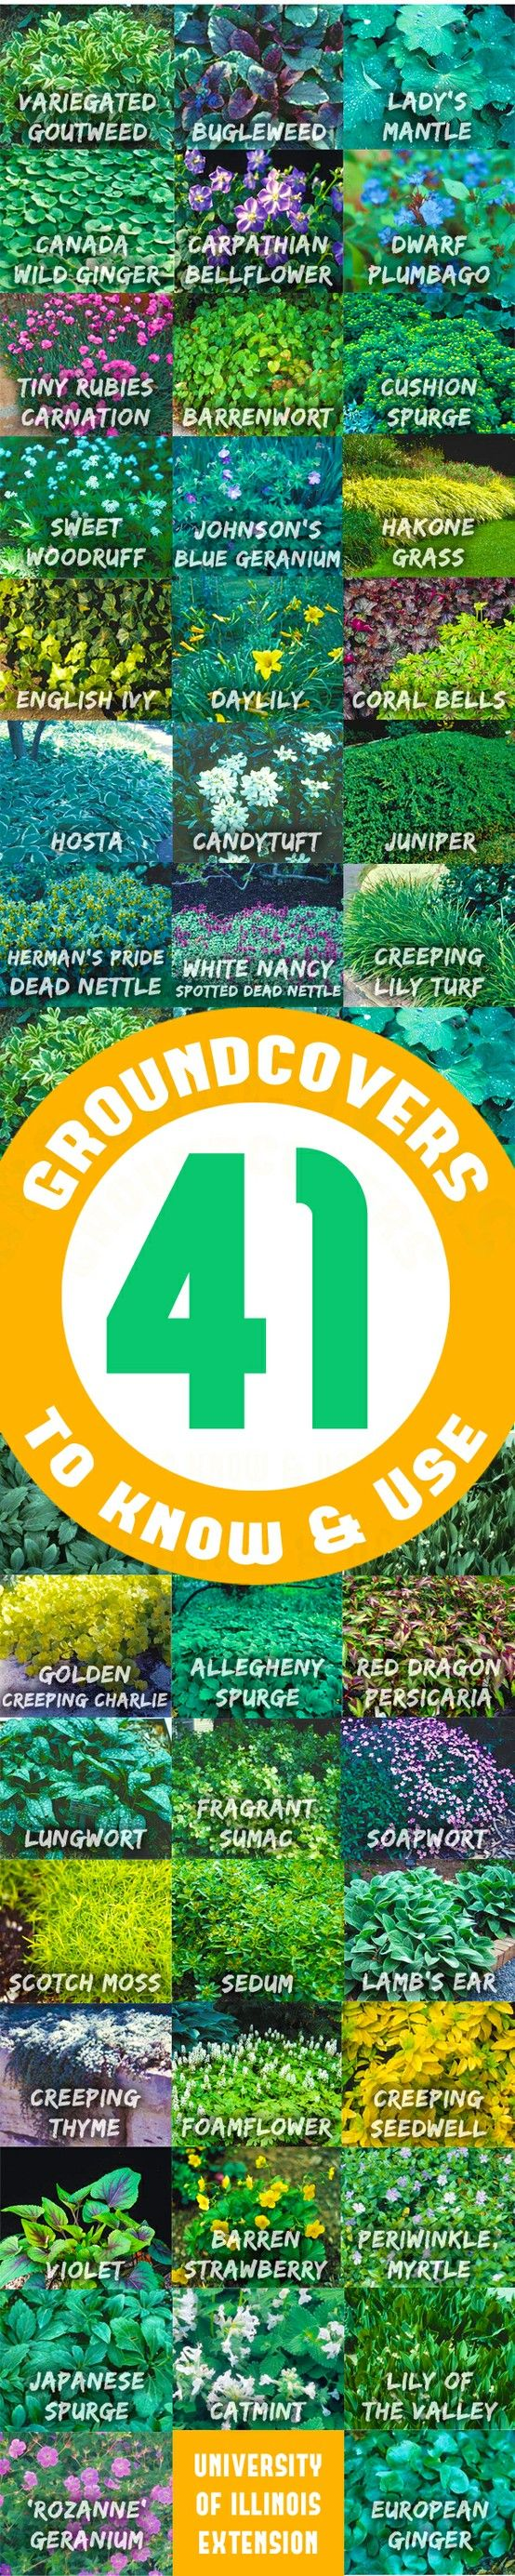 41 Groundcovers to Know & Use: Groundcover plants, when properly taken care of, provide dense soil cover, retard weed growth, and prevent soil erosion. Groundcovers range in height from an inch to four feet. They can be woody or herbaceous; clumping or running; evergreen or deciduous. There is a broad array of colors and textures to choose from.